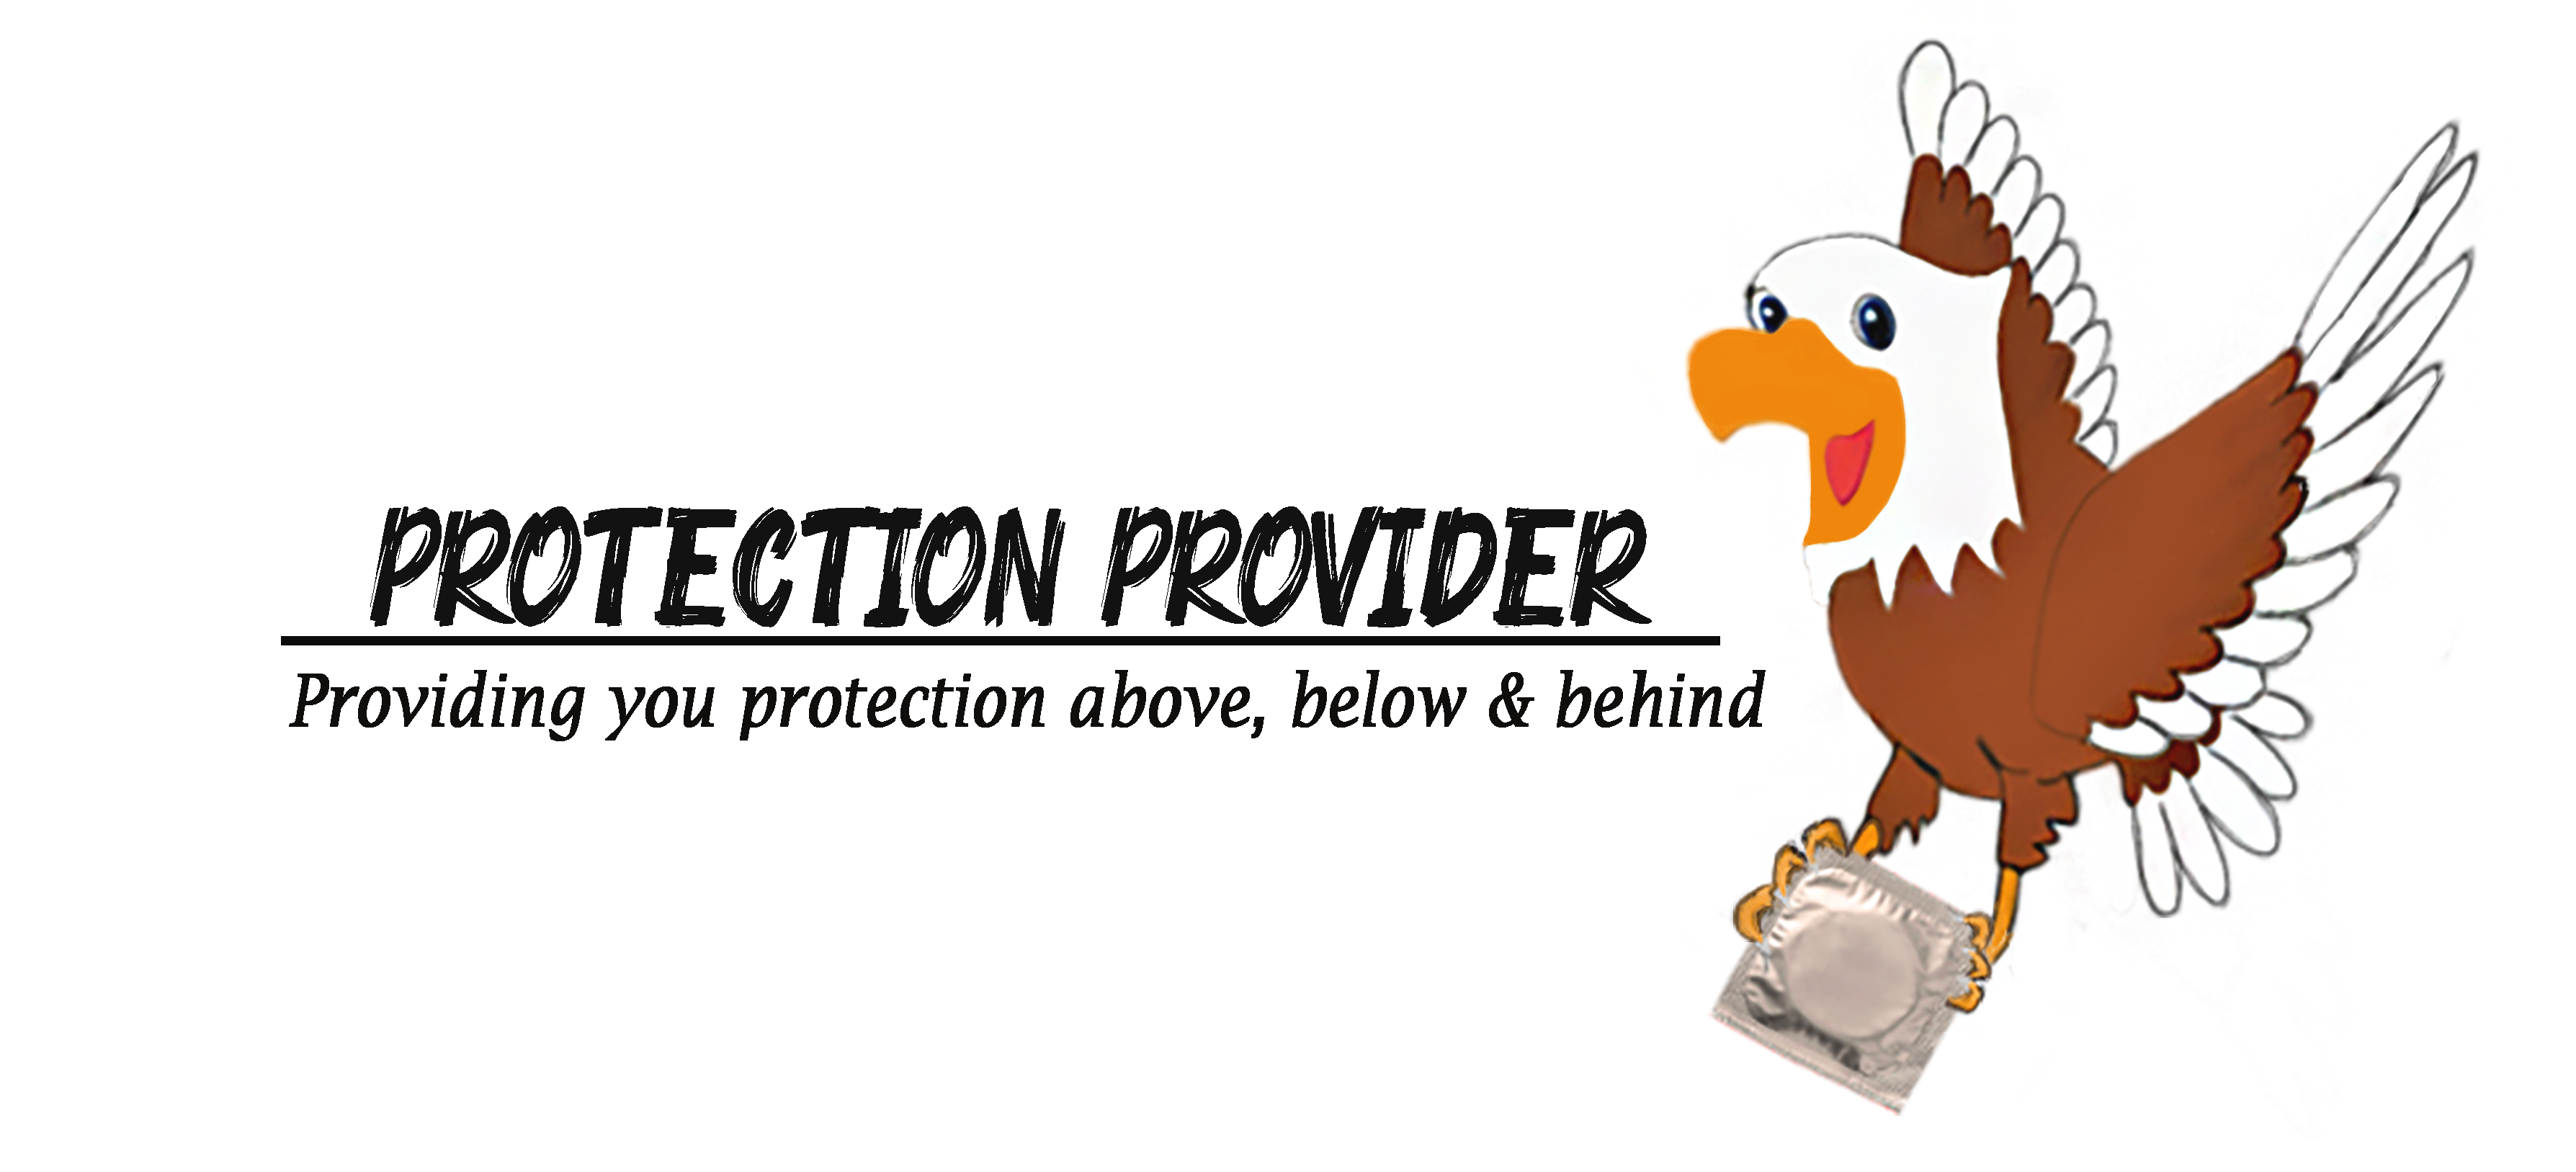 Protection Provider. Providing your protection above, below & behind